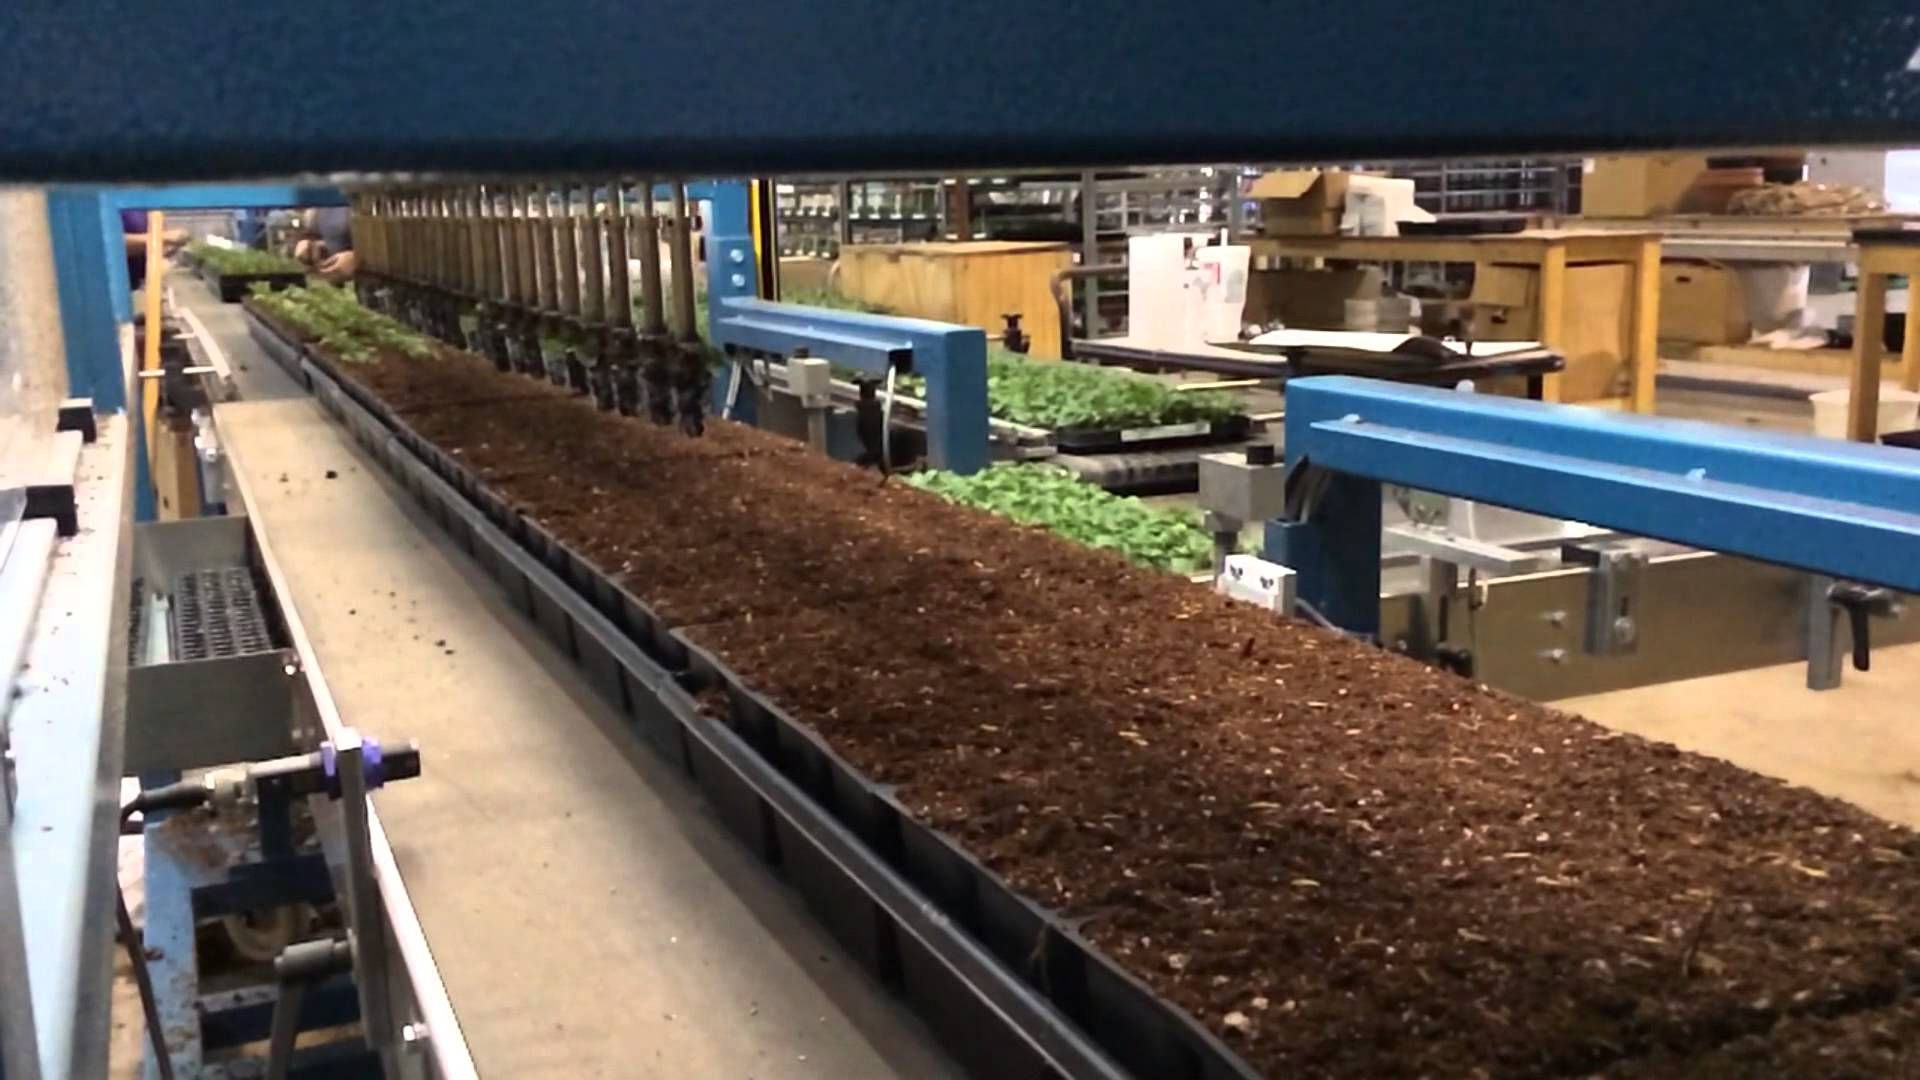 Transplanting Pansies | movies related to technic and machines ...